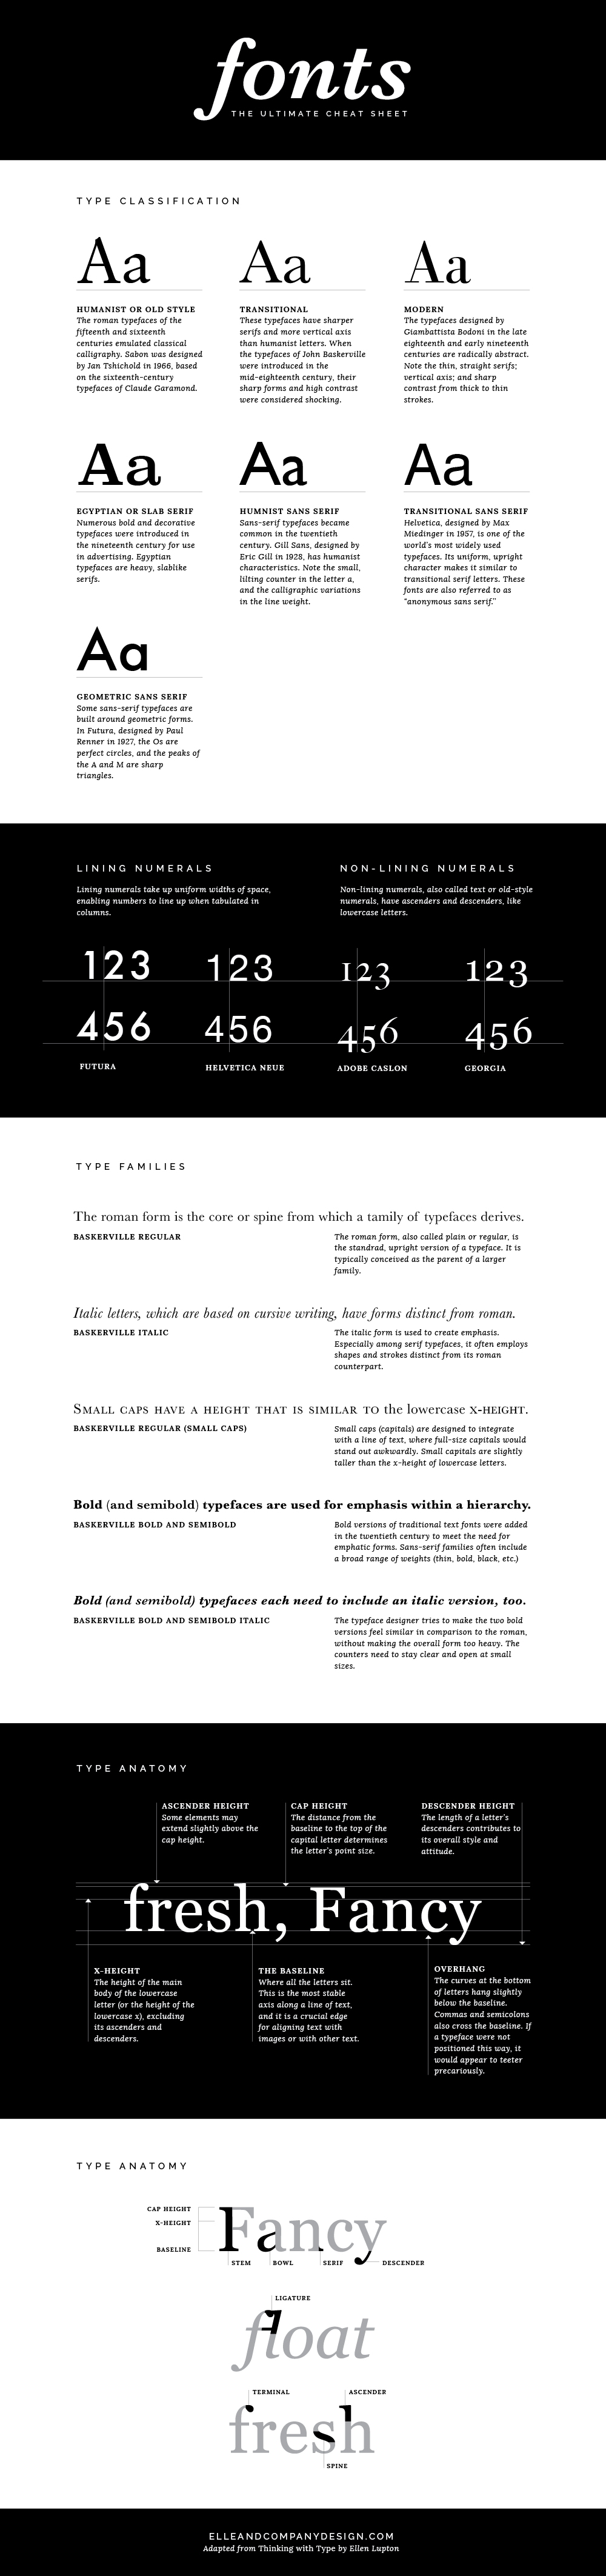 The ultimate font cheat sheet - Elle & Co.